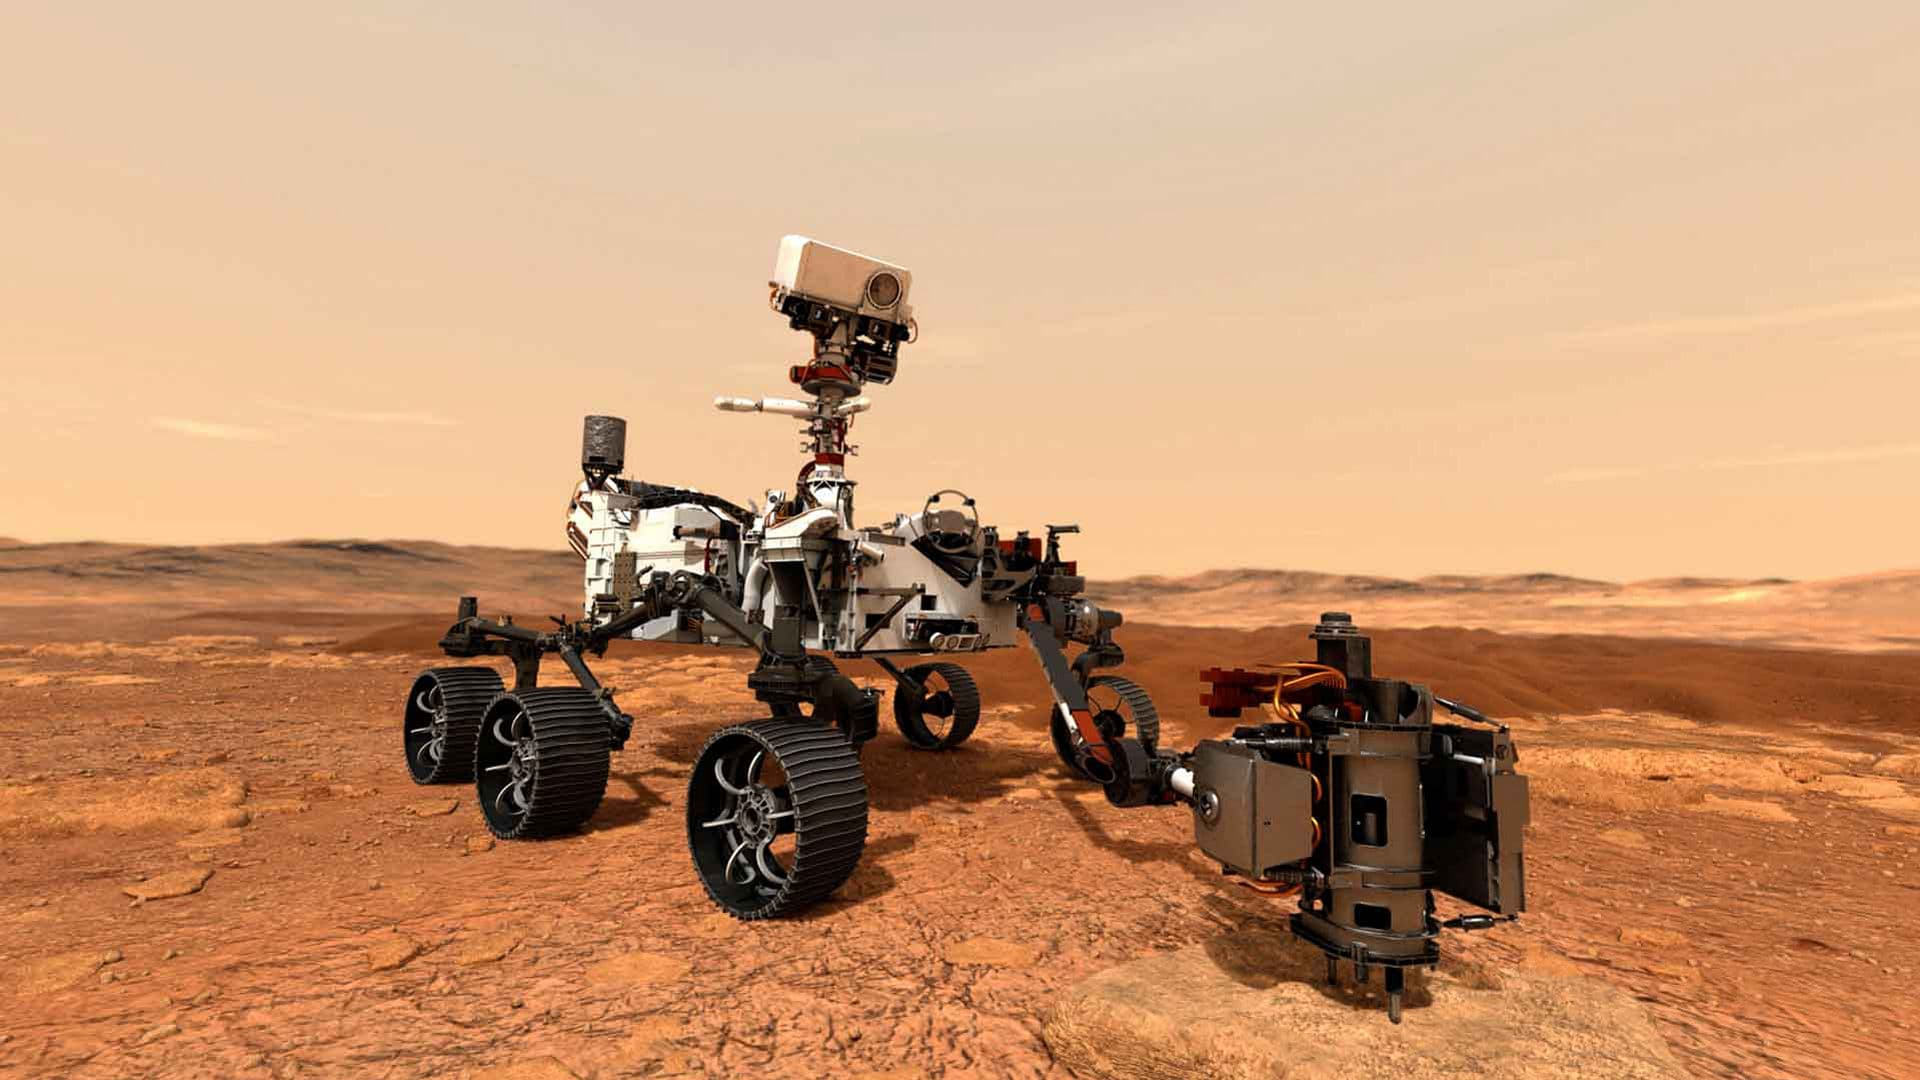 Rover Perseverance Is on Its Way to Mars